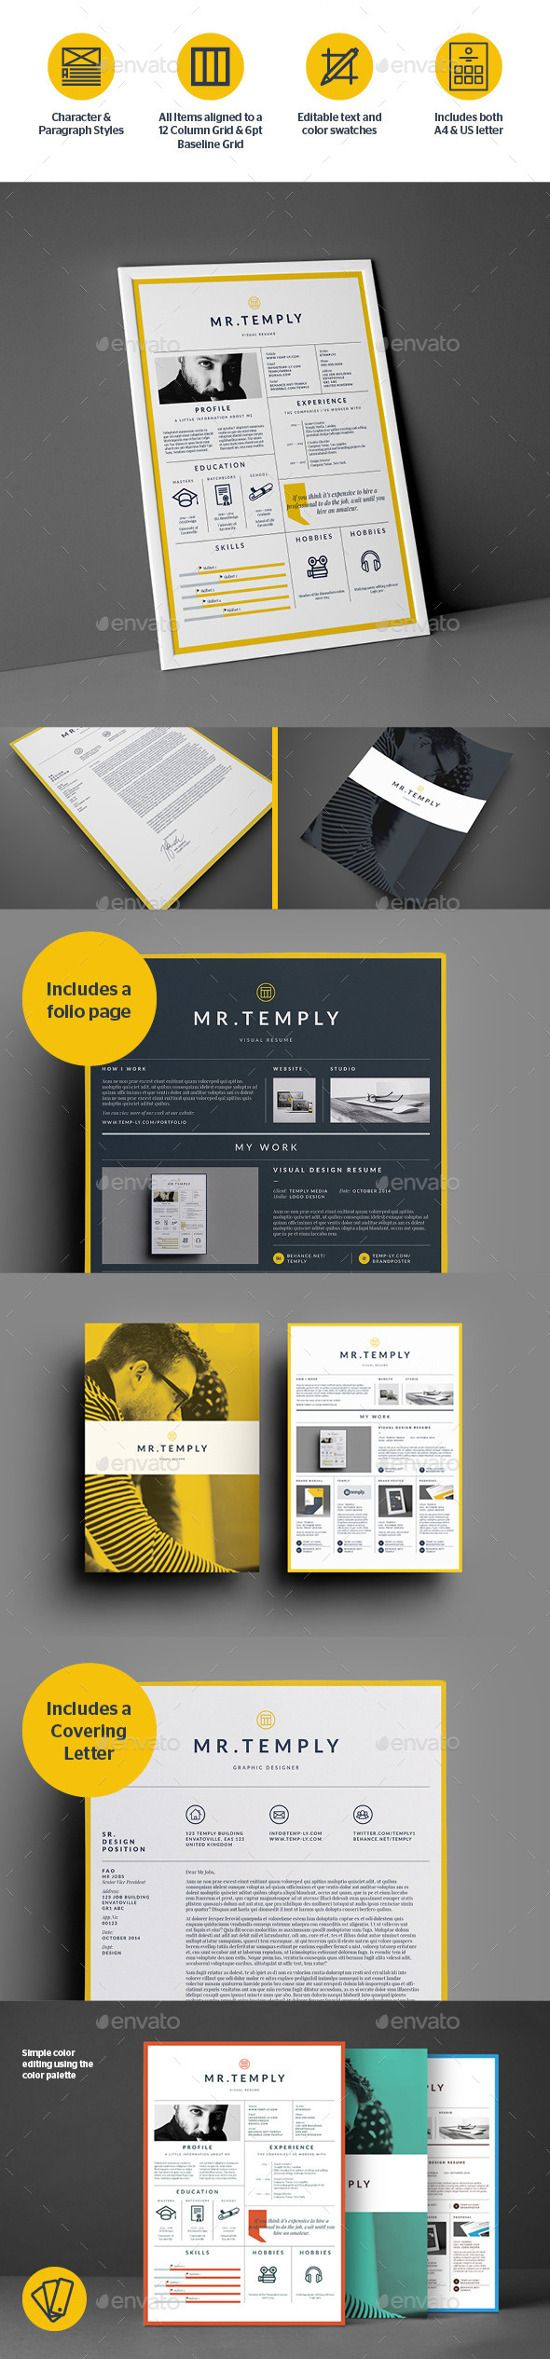 best images about infographic visual resumes visual resume by temp ly